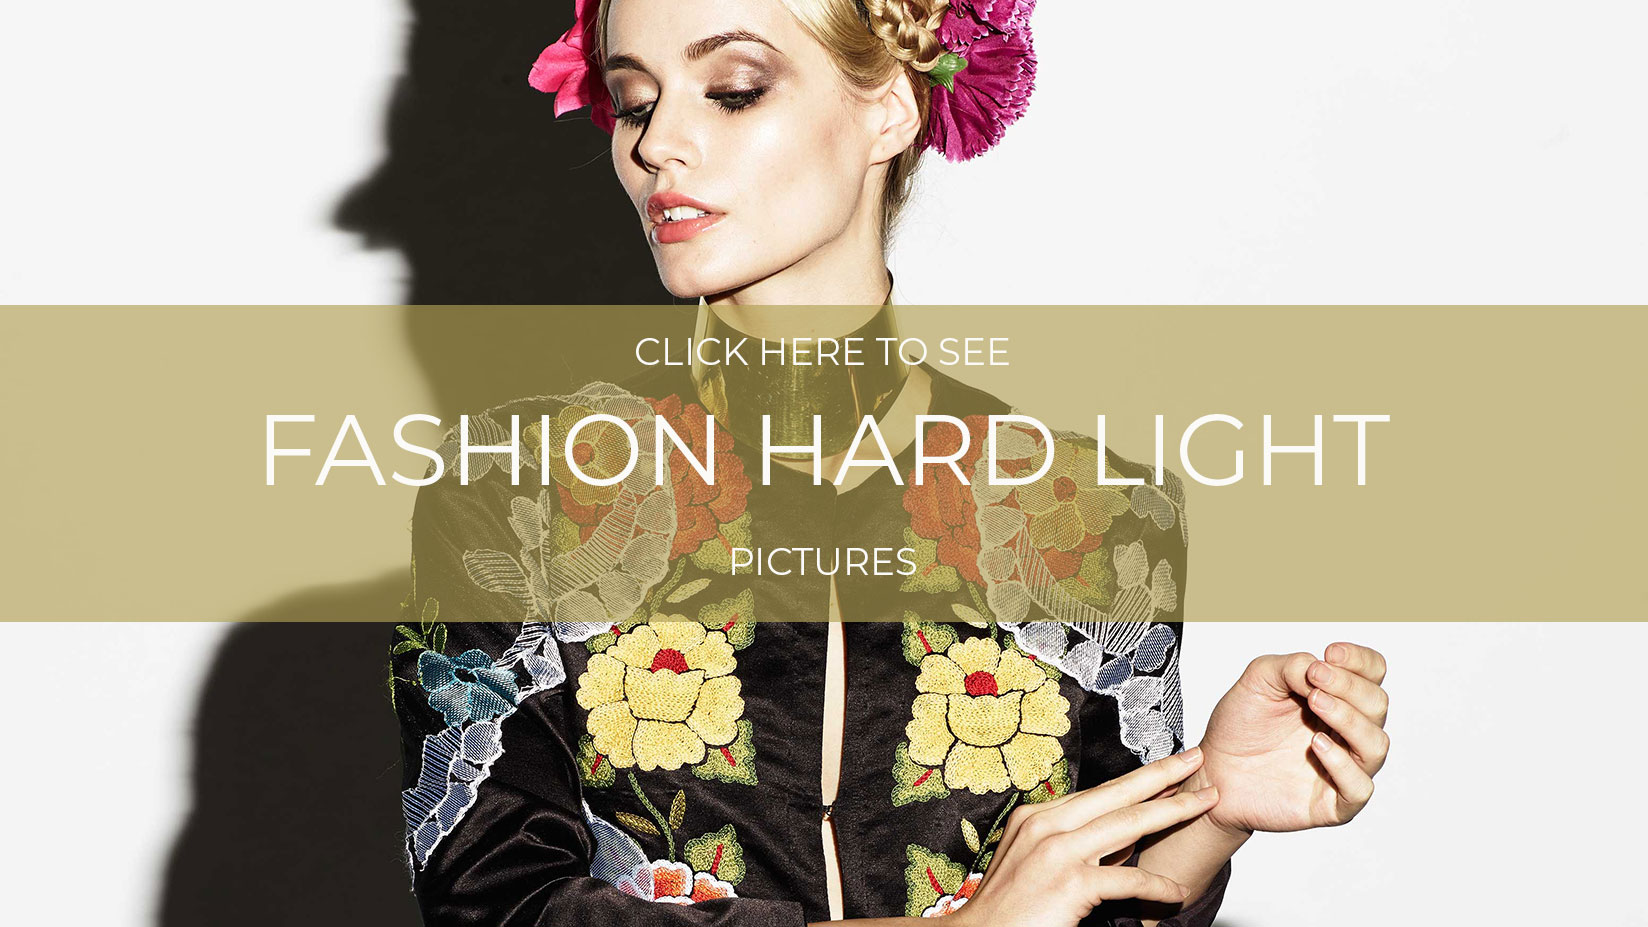 Fashion Hard Light